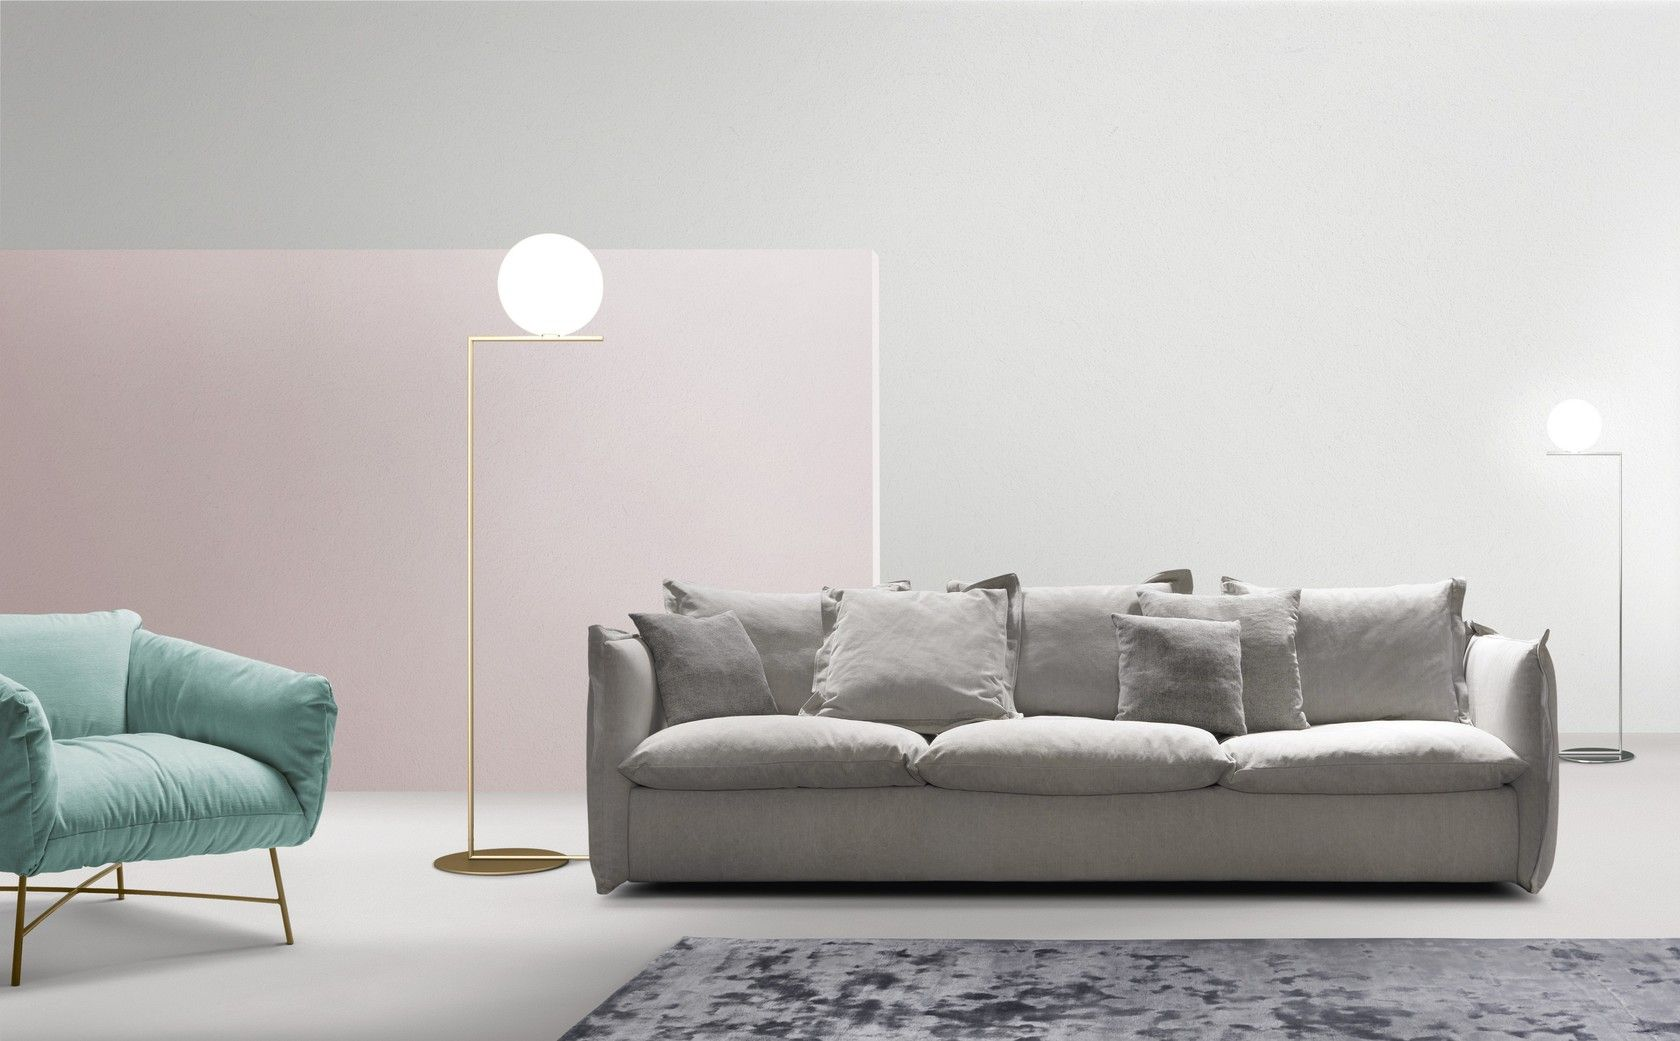 Sectional 3 Seater Fabric Sofa With Removable Cover Knit 3 Seater Sofa By My Home Collection With Images Sofa Home Collections Sofa Design